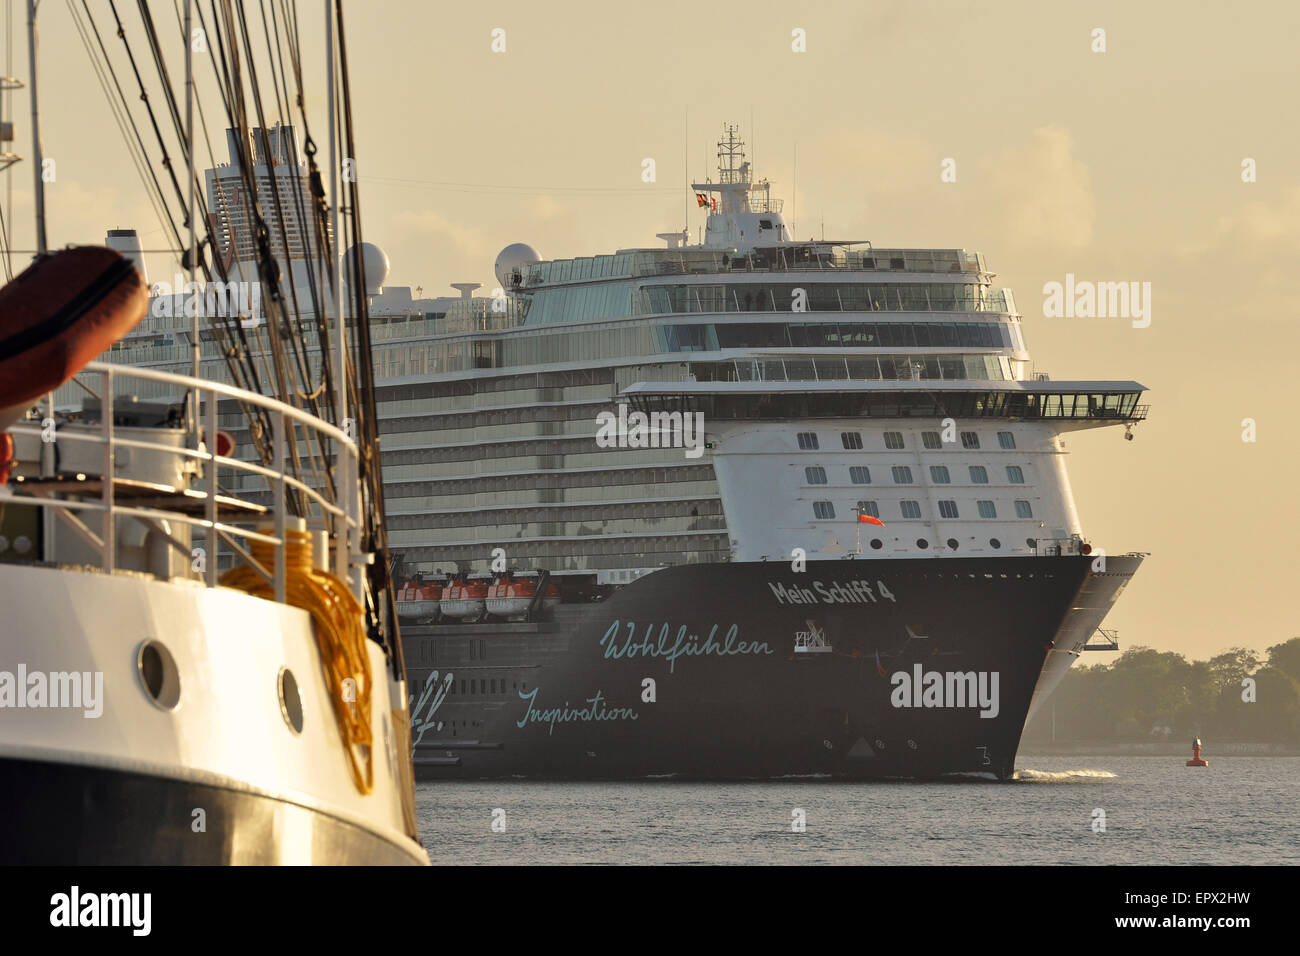 Cruiseship 'Mein Schiff 4' passing a traditional sailing ship in the early morning sun. - Stock Image